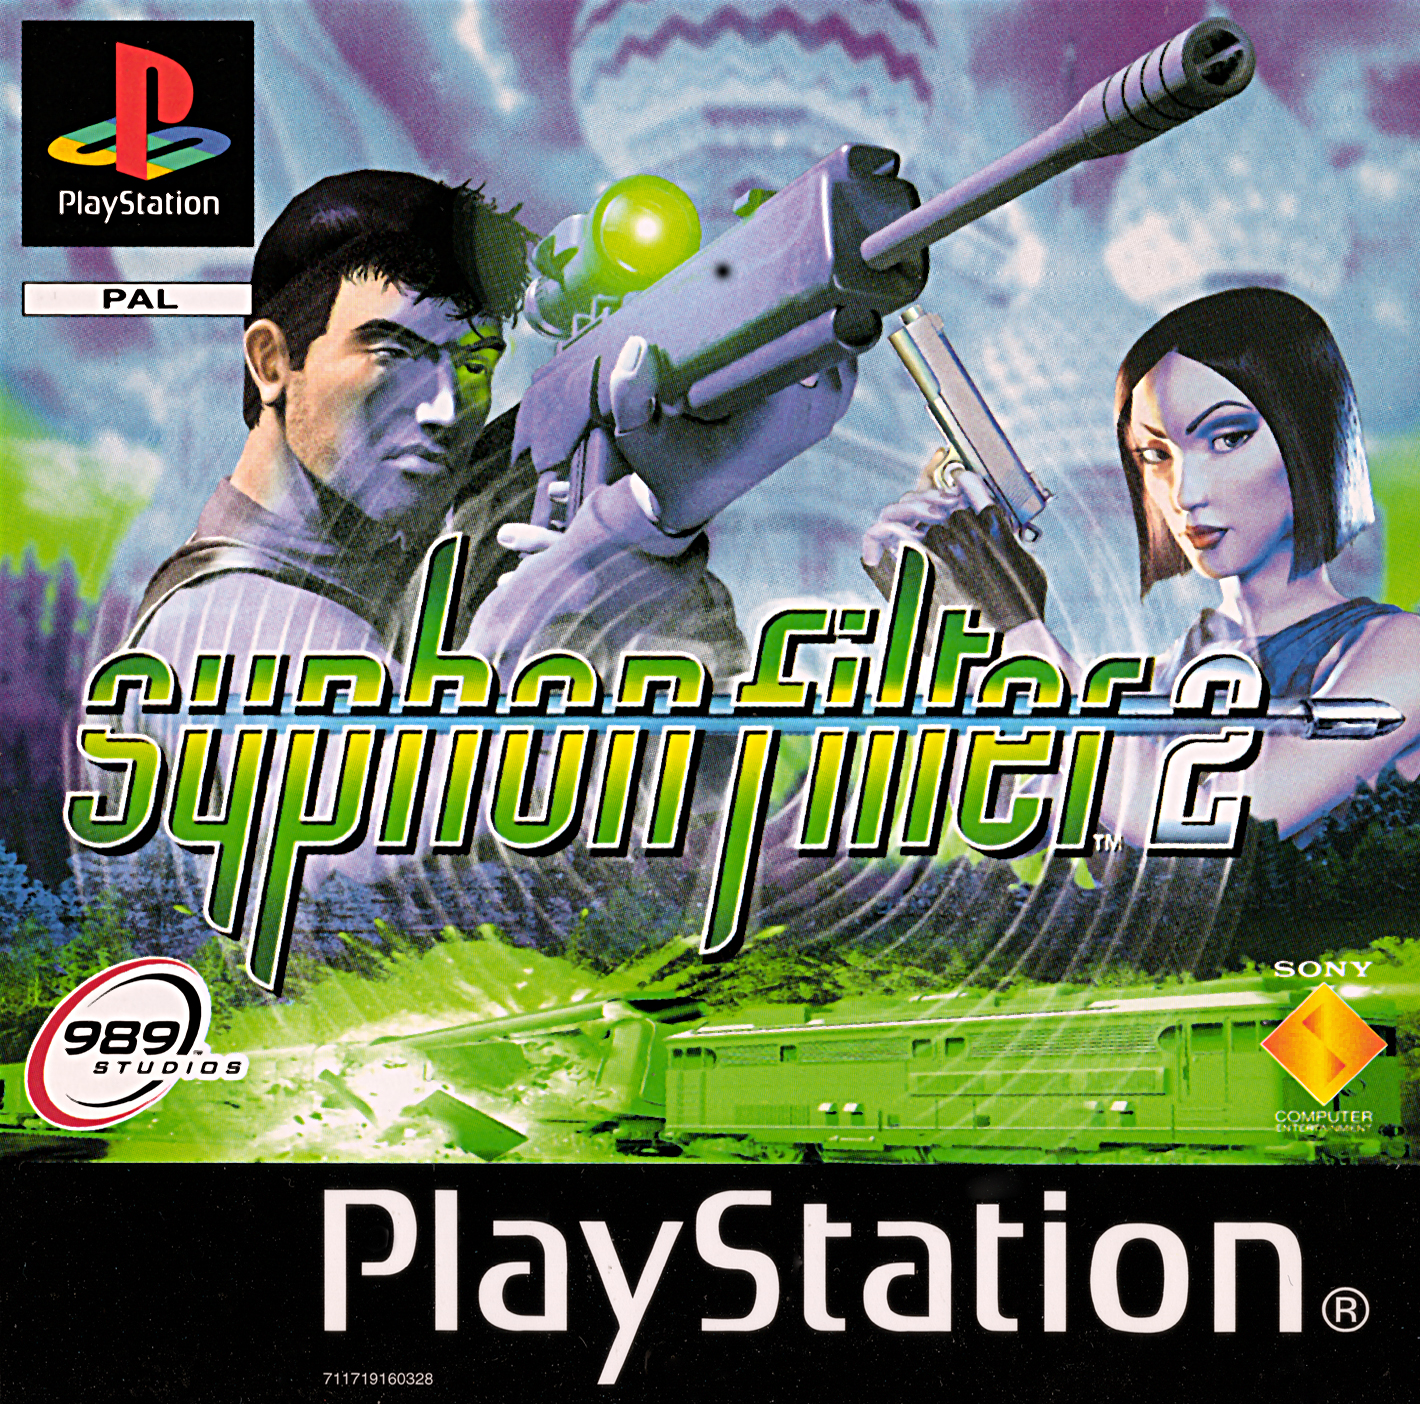 Syphon_Filter2 PS1